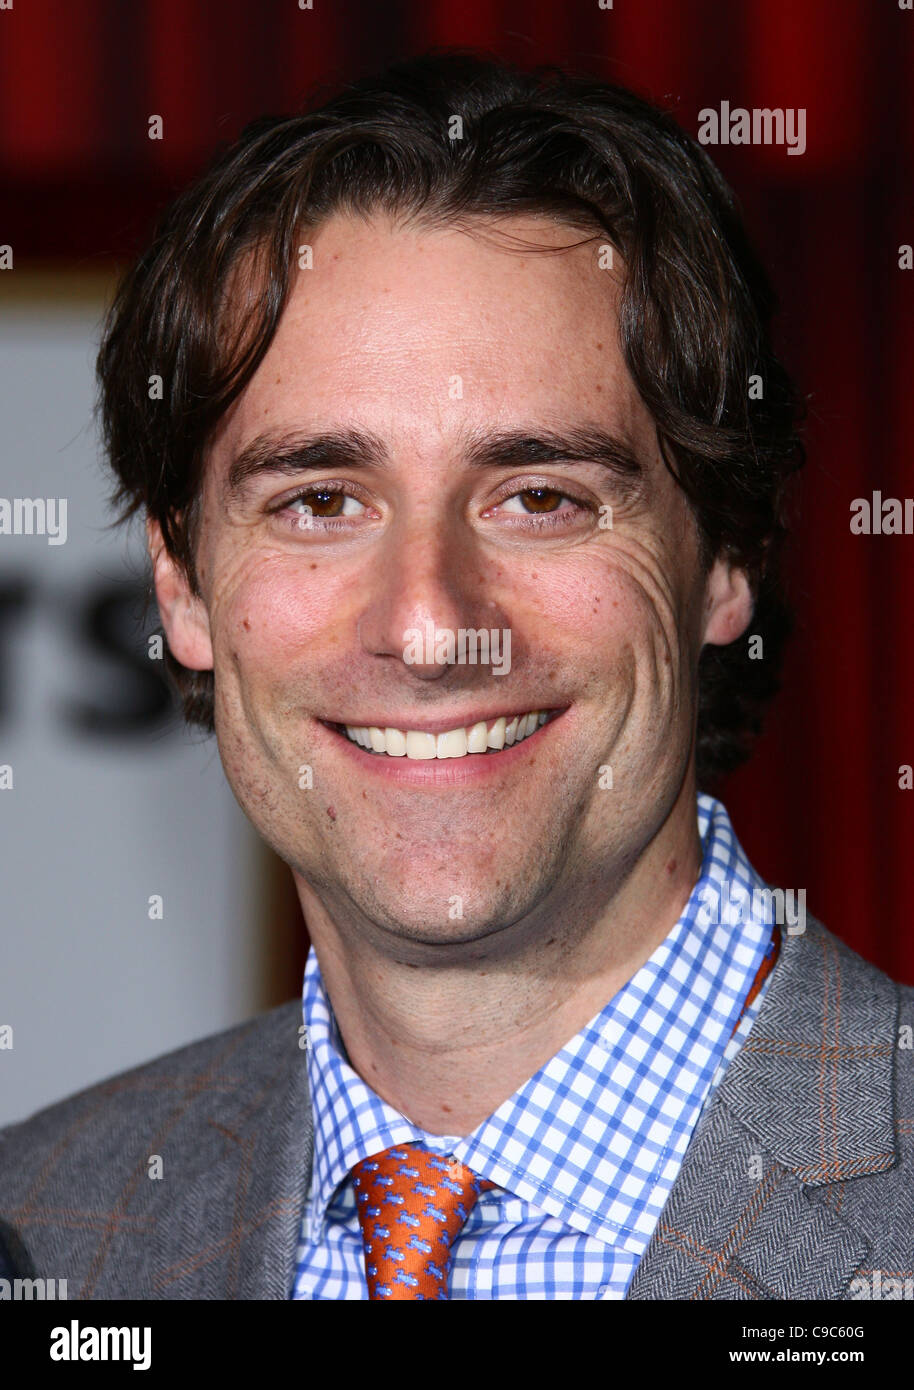 TODD LIEBERMAN THE MUPPETS. WORLD PREMIERE HOLLYWOOD LOS ANGELES CALIFORNIA USA 12 November 2011 - Stock Image